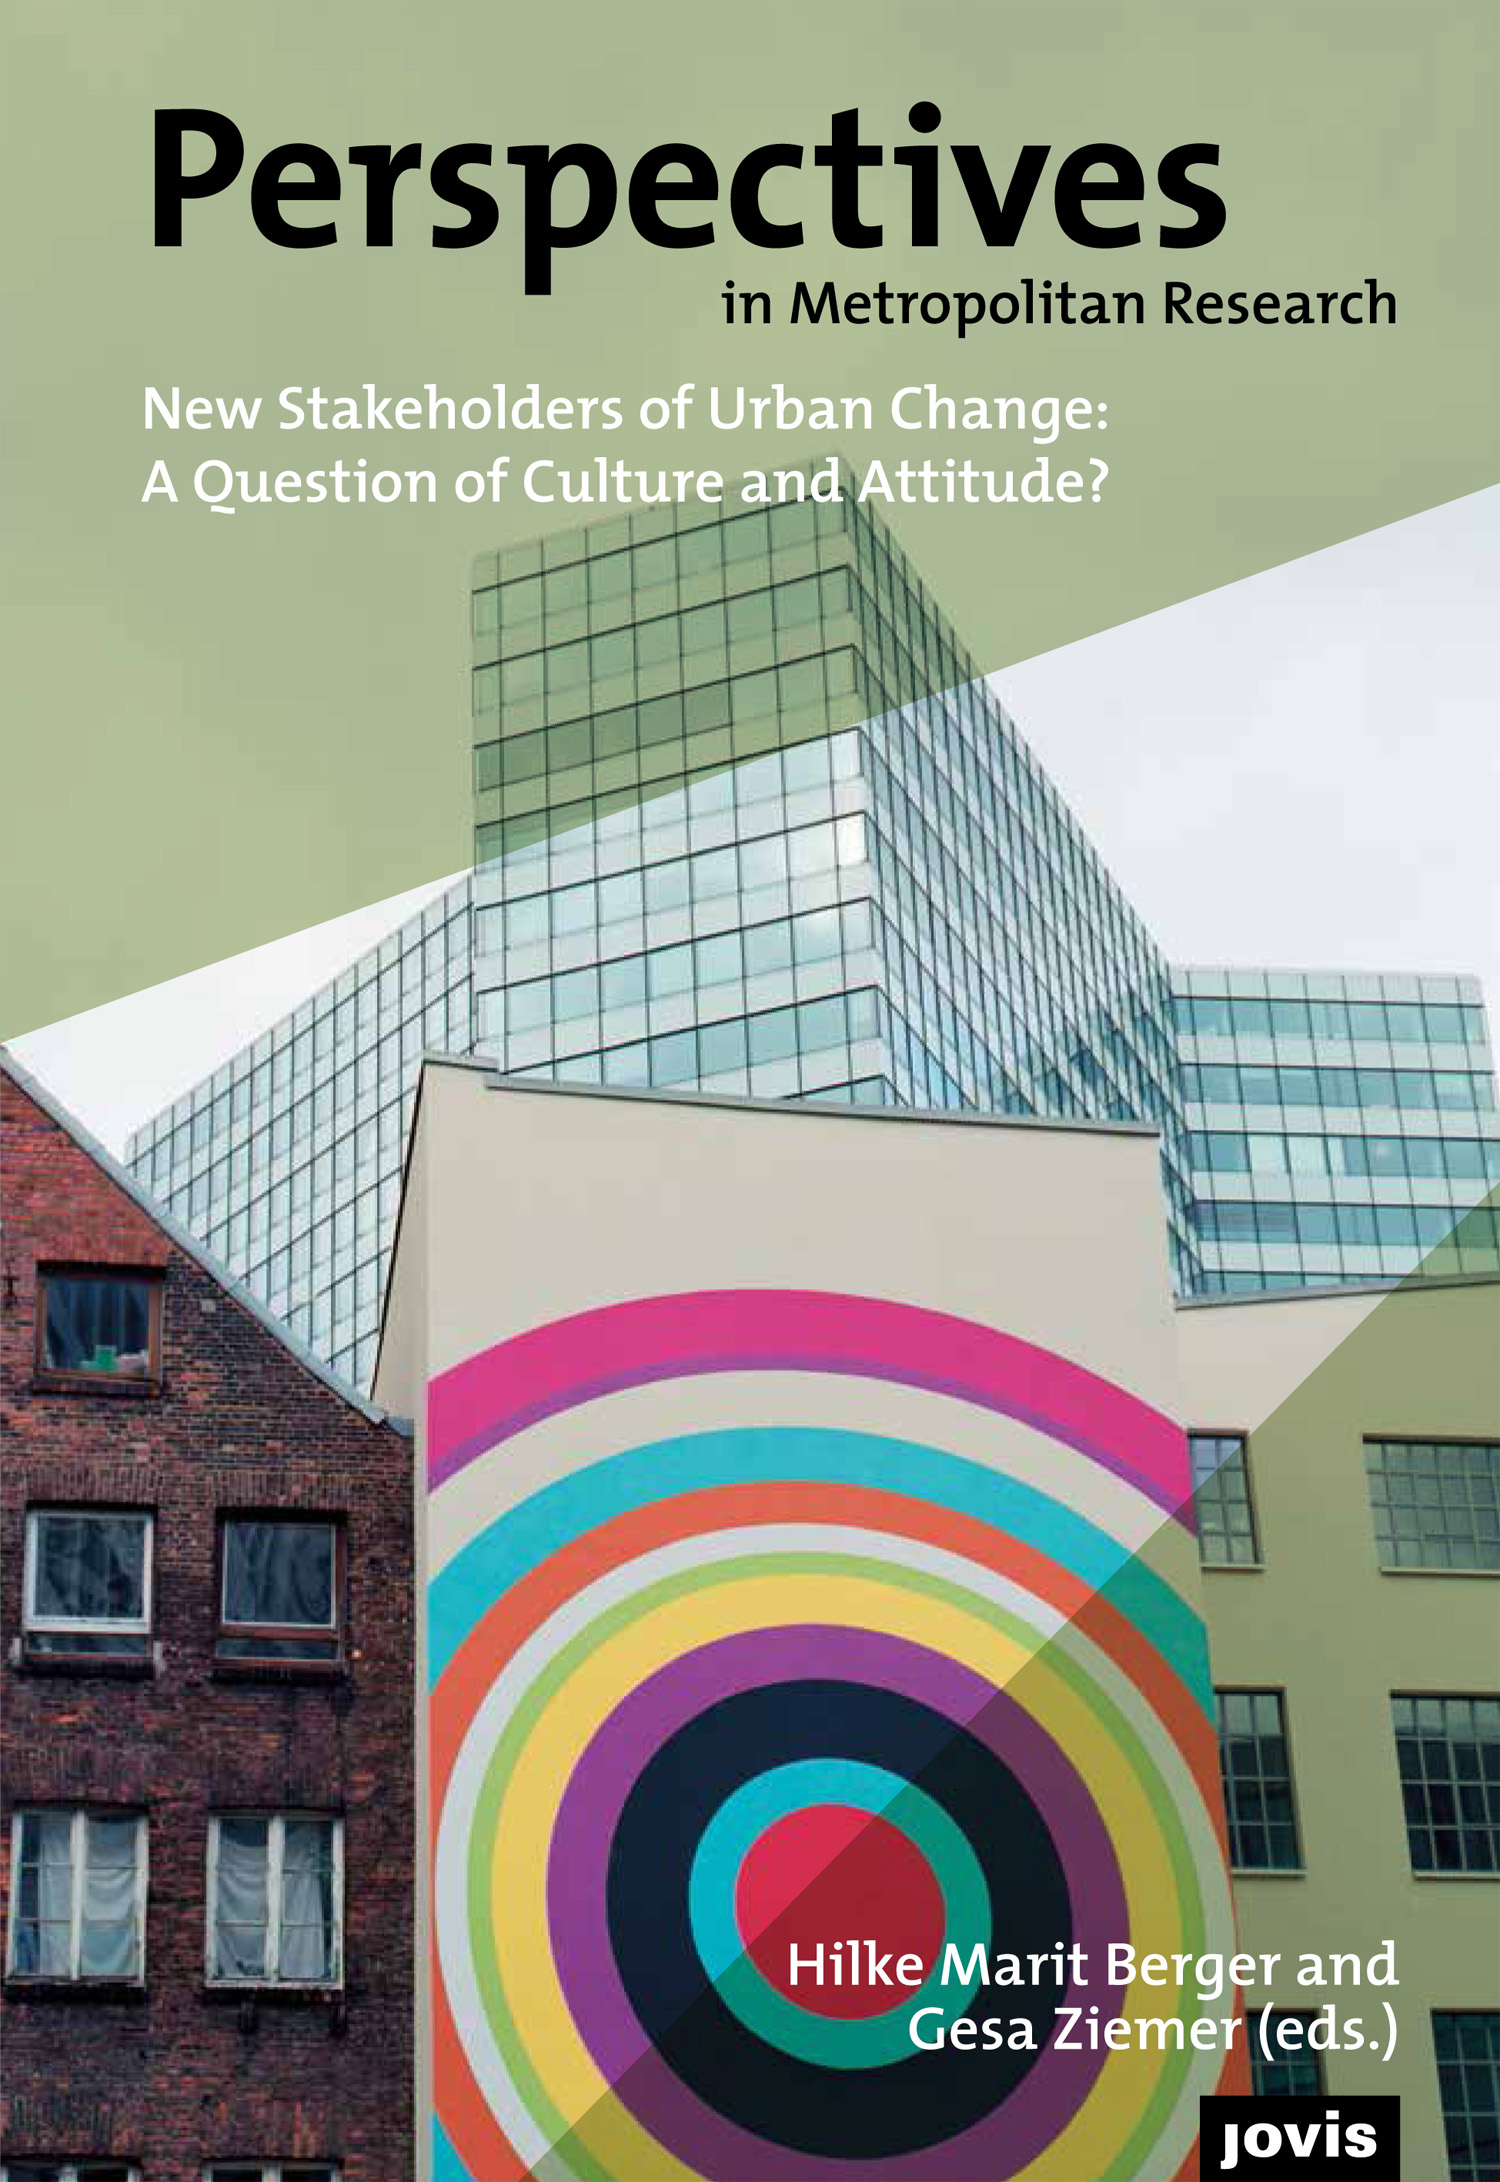 New Stakeholders of Urban Change, Jovis 2017